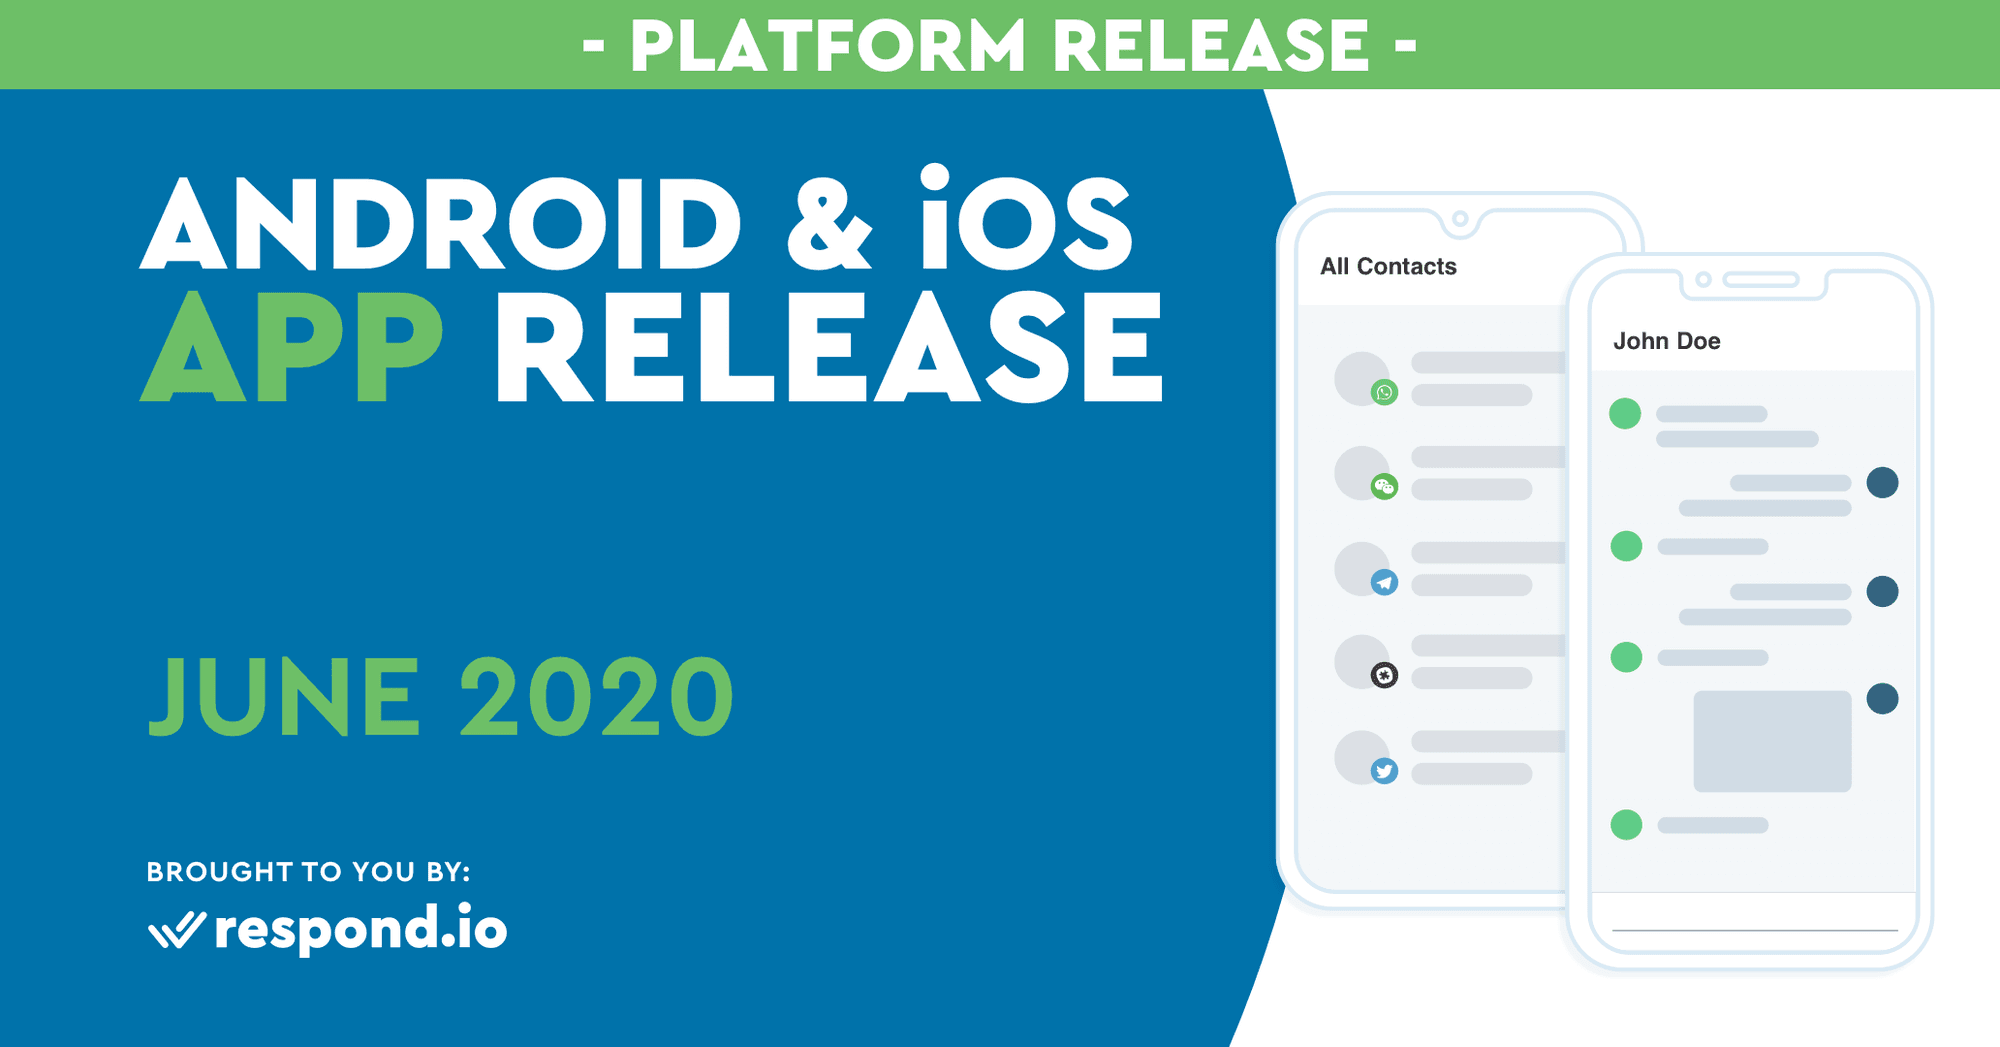 The June 2020 Release - Android & iOS Apps